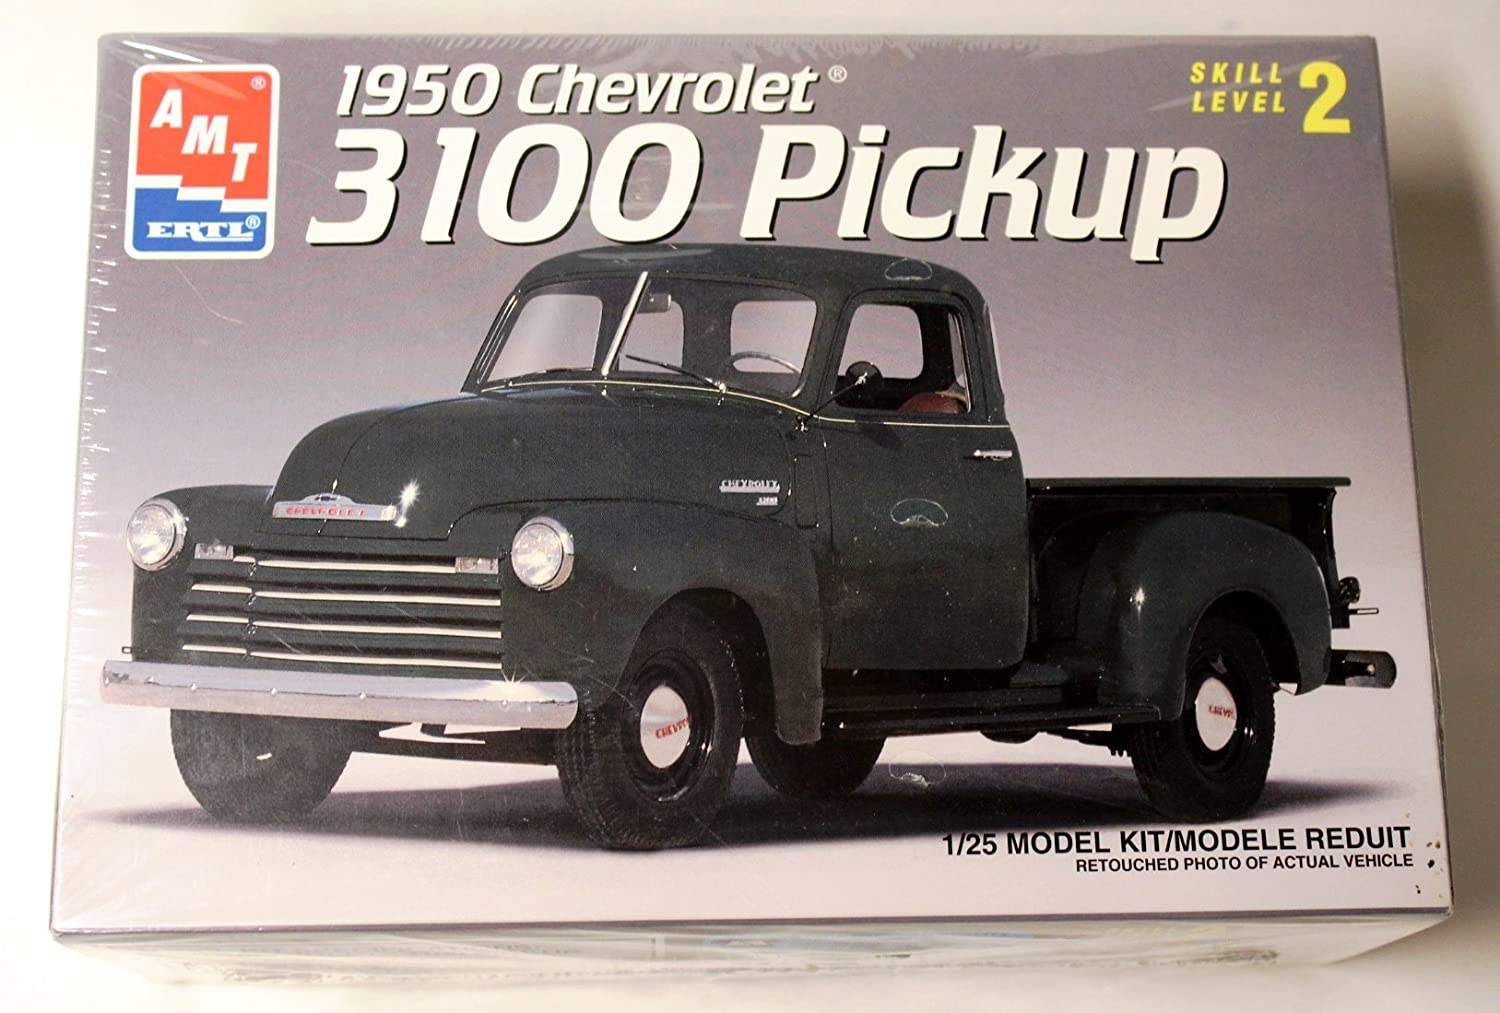 1950 Chevrolet 3100 Pickup 1 25 Model Kit By Amt Toys 1949 Chevy Truck 5 Window Games